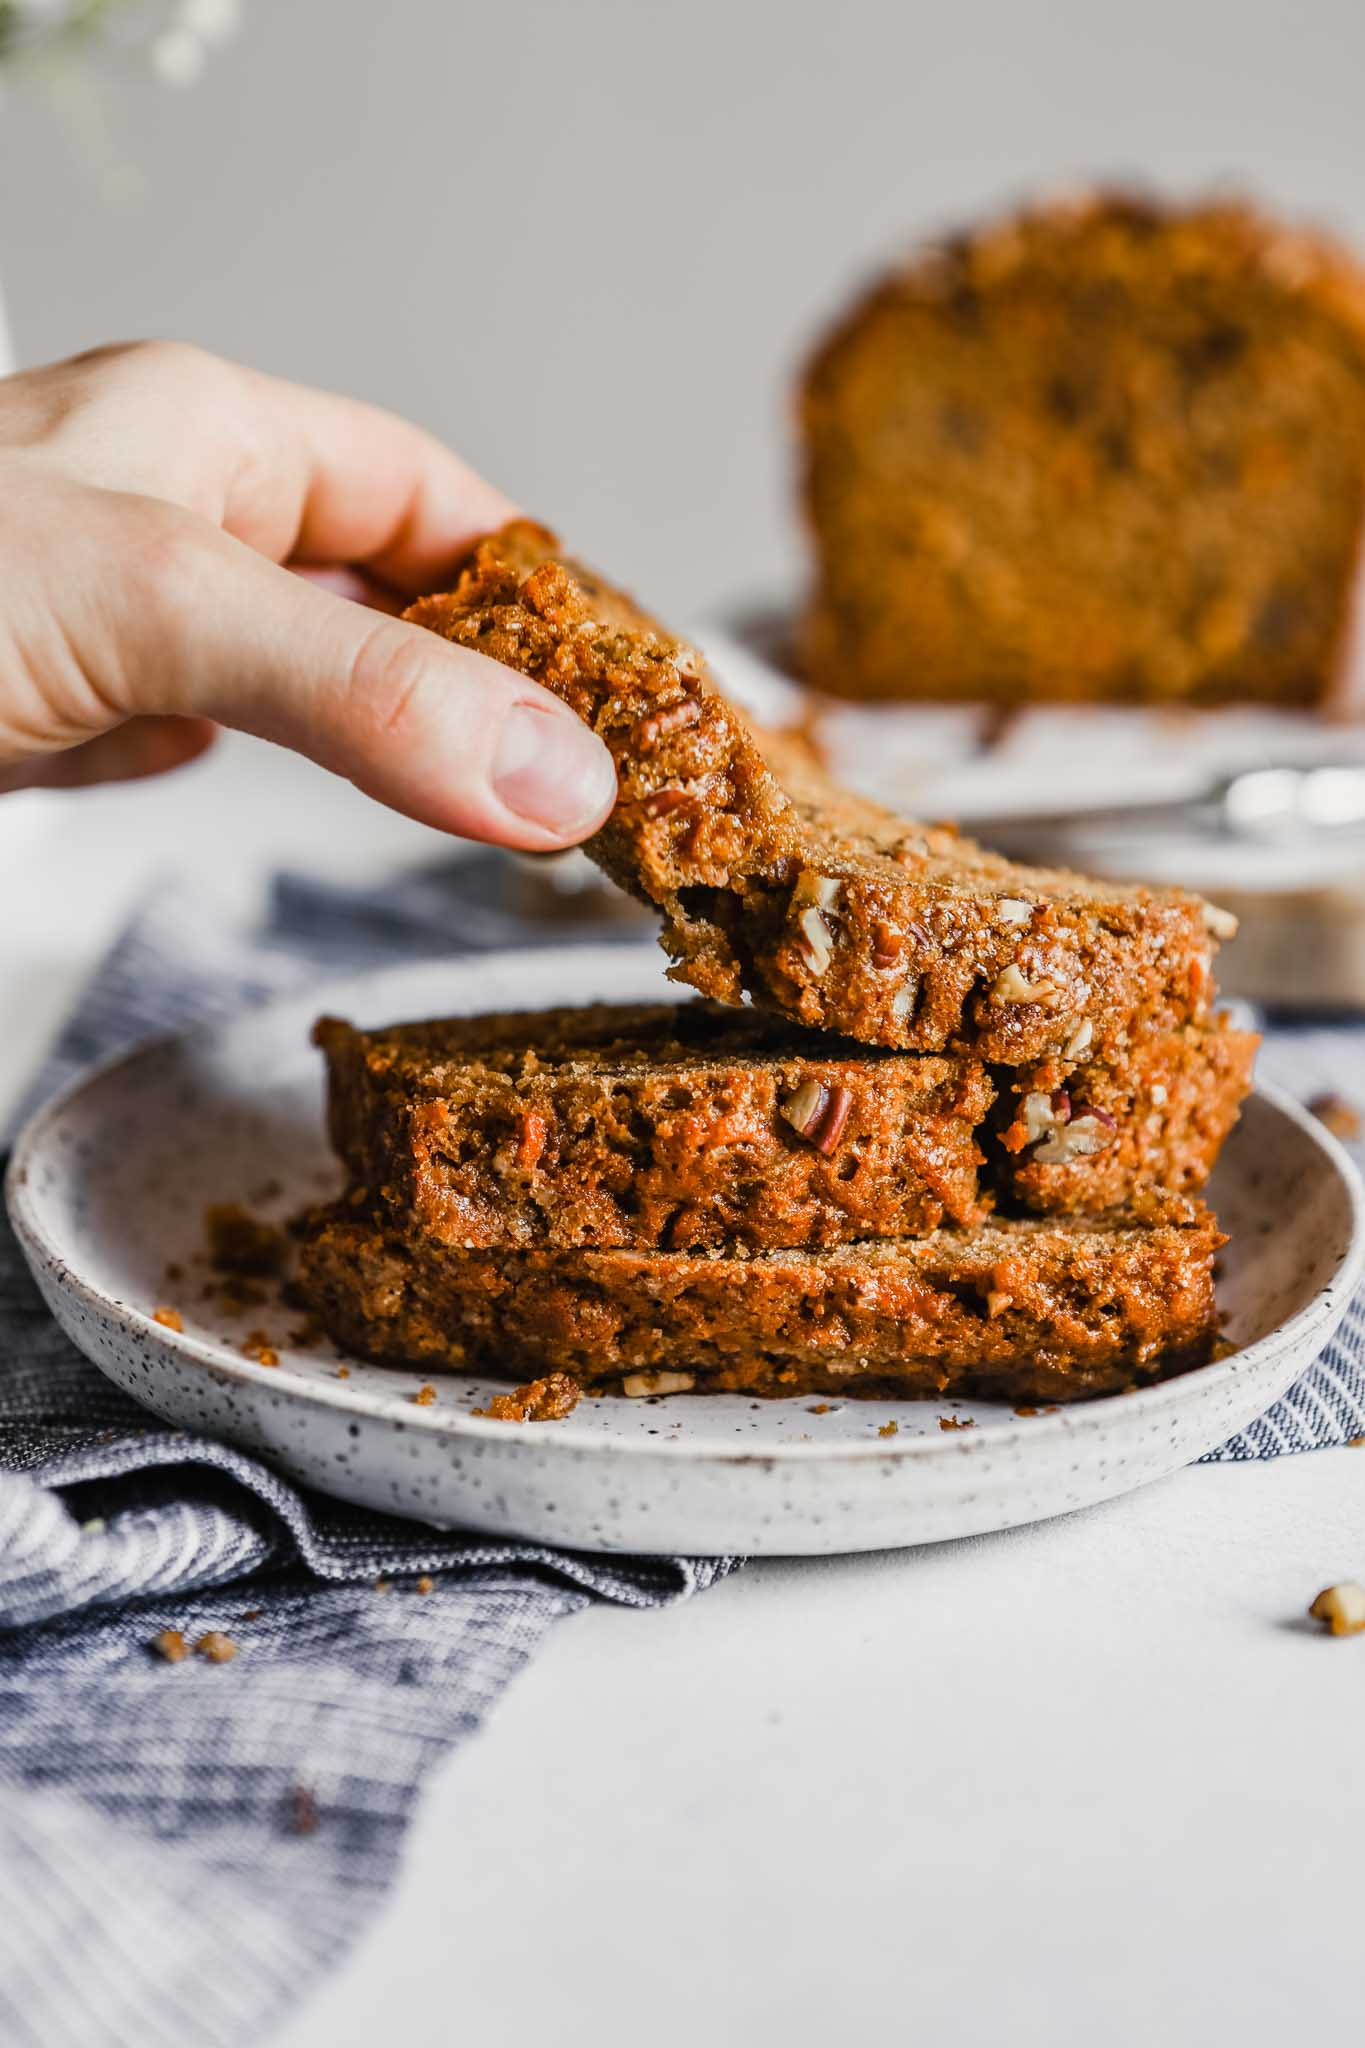 Photograph of someone picking up a slice of carrot bread off of a plate stacked with slices of bread